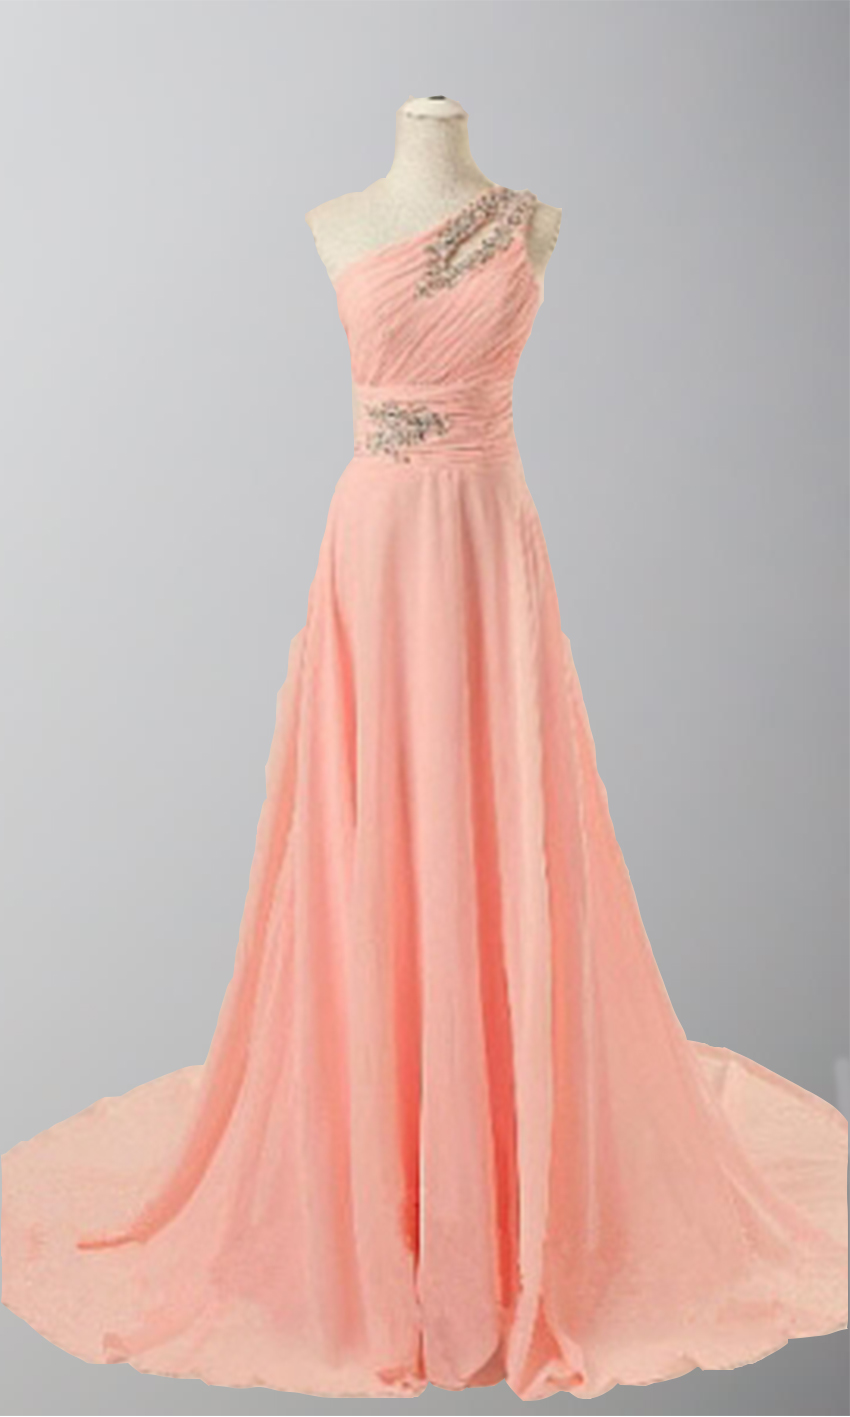 £91.00 : cheap prom dresses uk, bridesmaid dresses, 2014 prom & evening dresses, look for cheap elegant prom dresses 2014, cocktail gowns, or dresses for special occasions? kissprom.co.uk offers various bridesmaid dresses, evening dress, free shipping to uk etc.